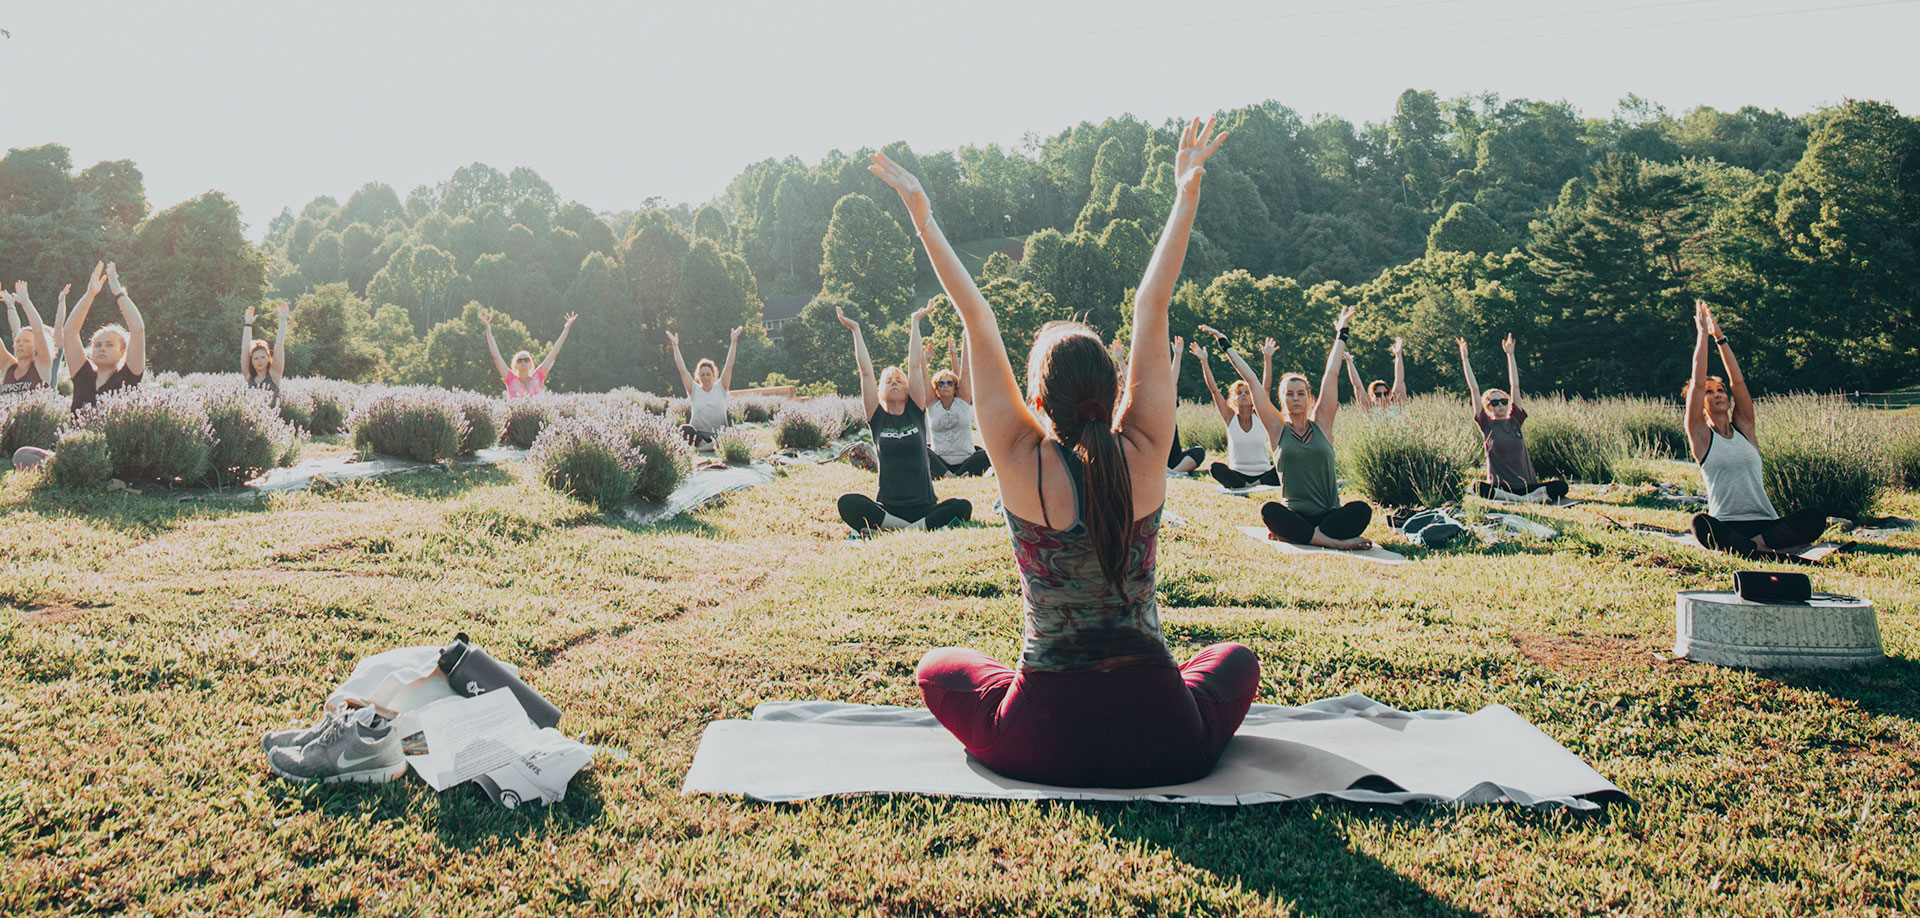 Yoga in a meadow.